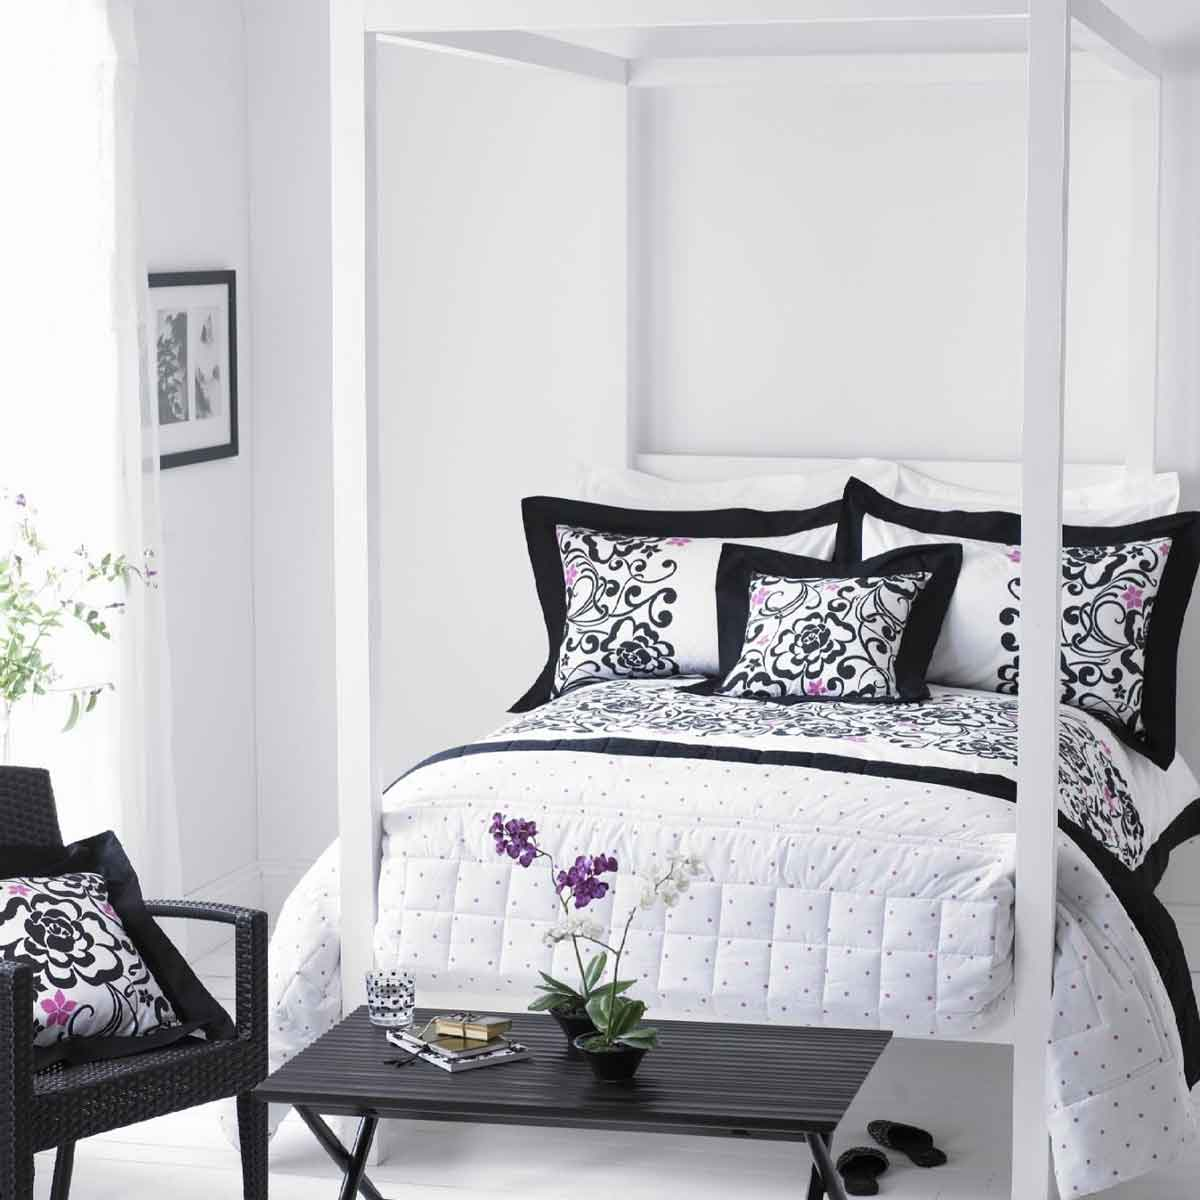 Black and white bedroom decorating ideas dream house for Black home design